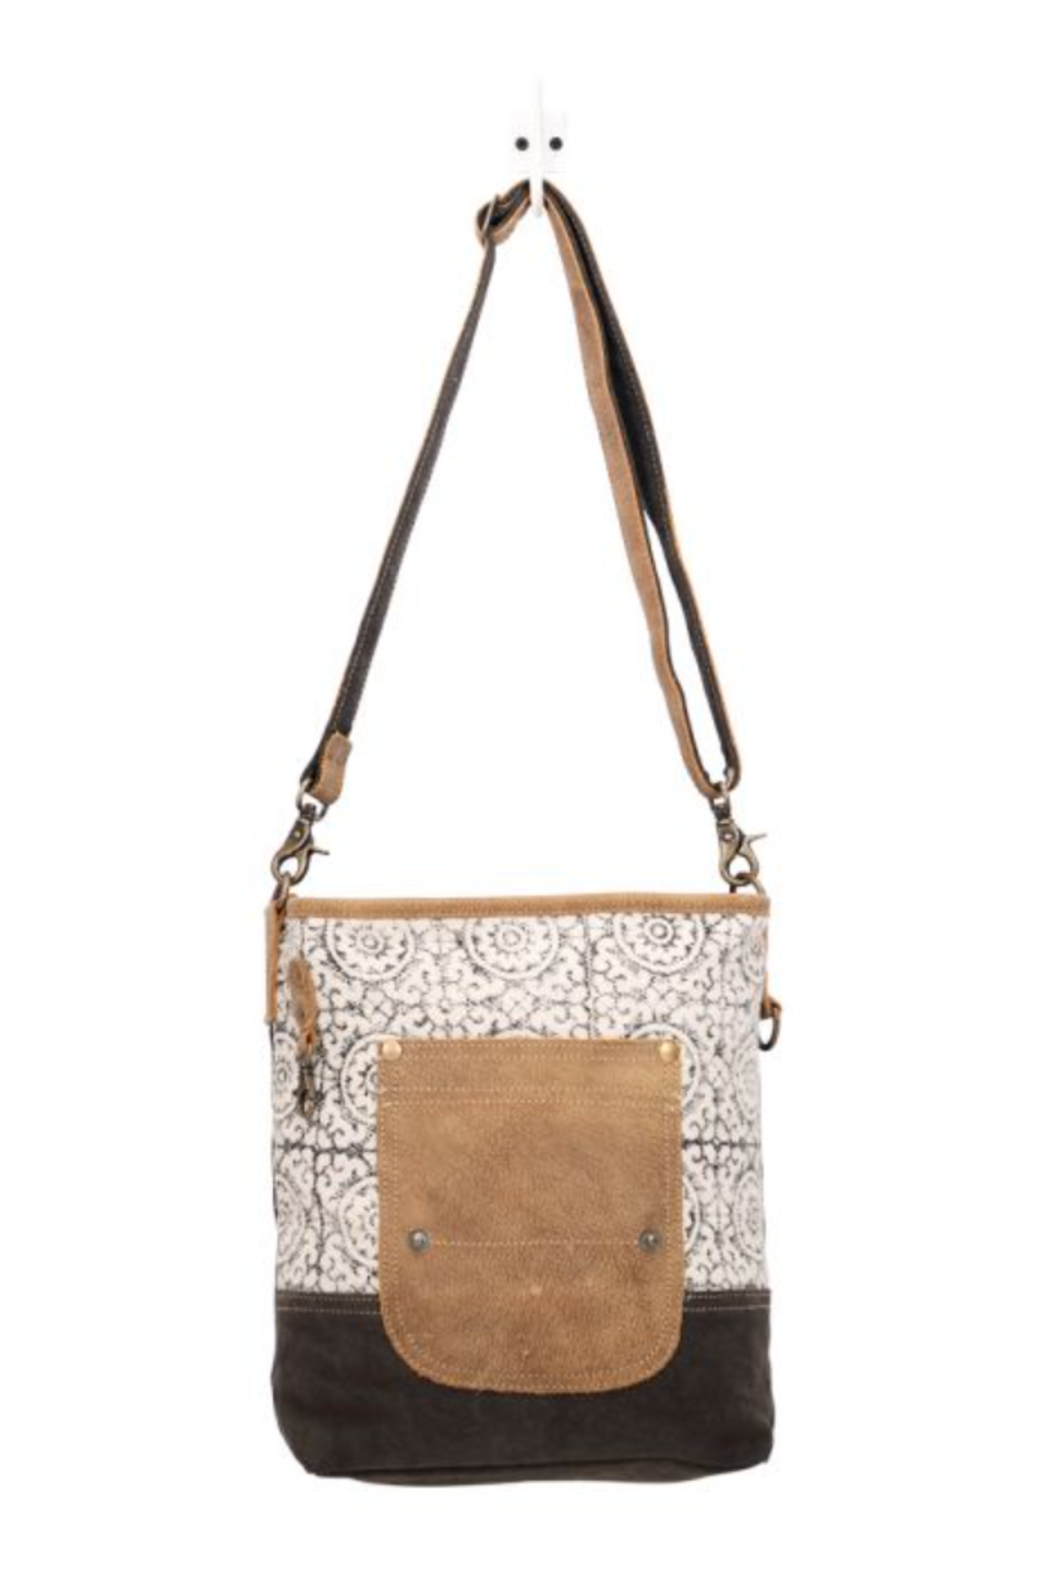 MarkWEST-Myra Bag Pivot Print Shoulder Bag - Main Image